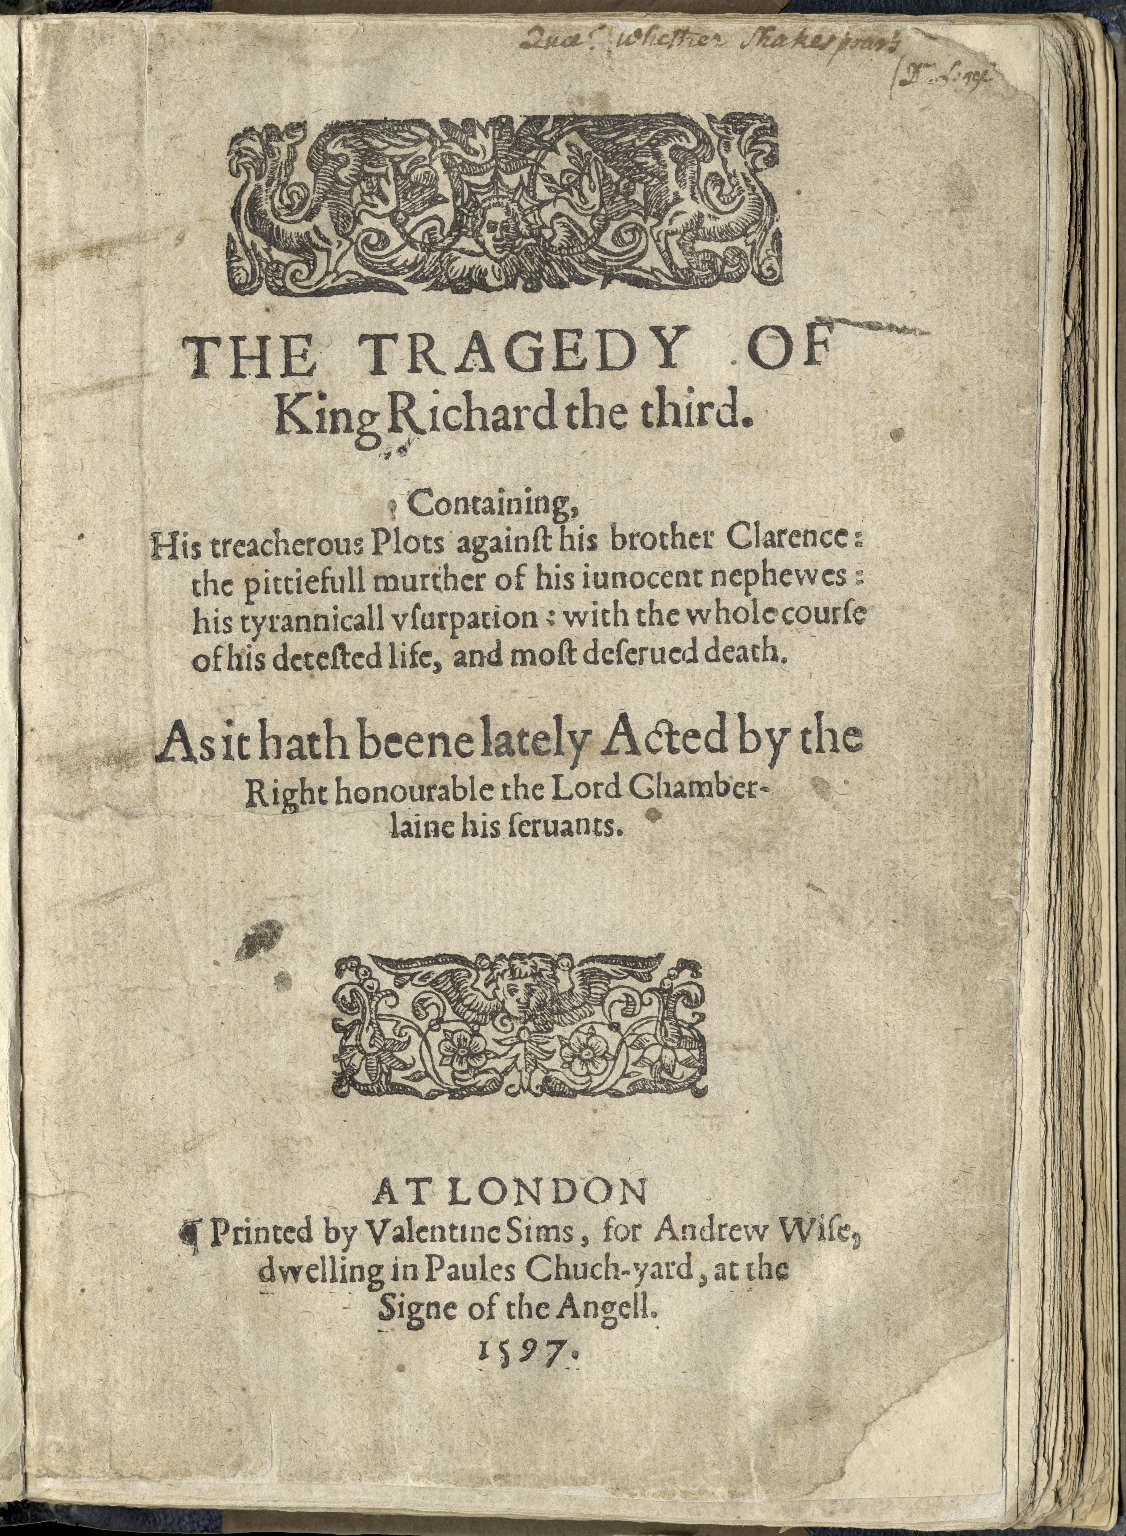 [King Richard III] The tragedy of King Richard the third.